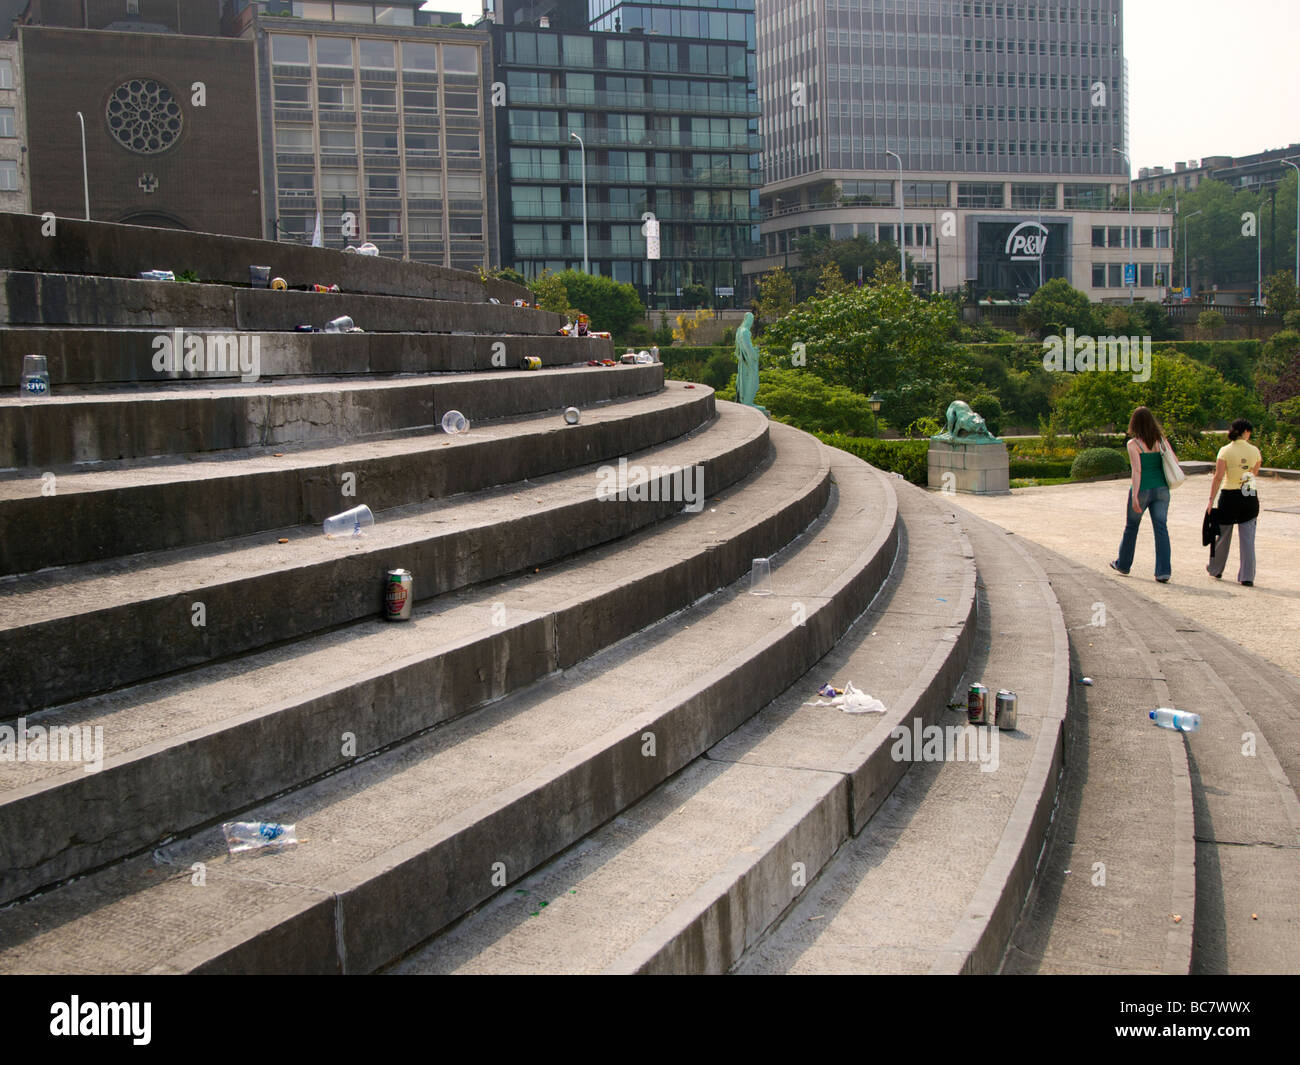 Littering on the steps in the botanical garden in Brussels Belgium - Stock Image